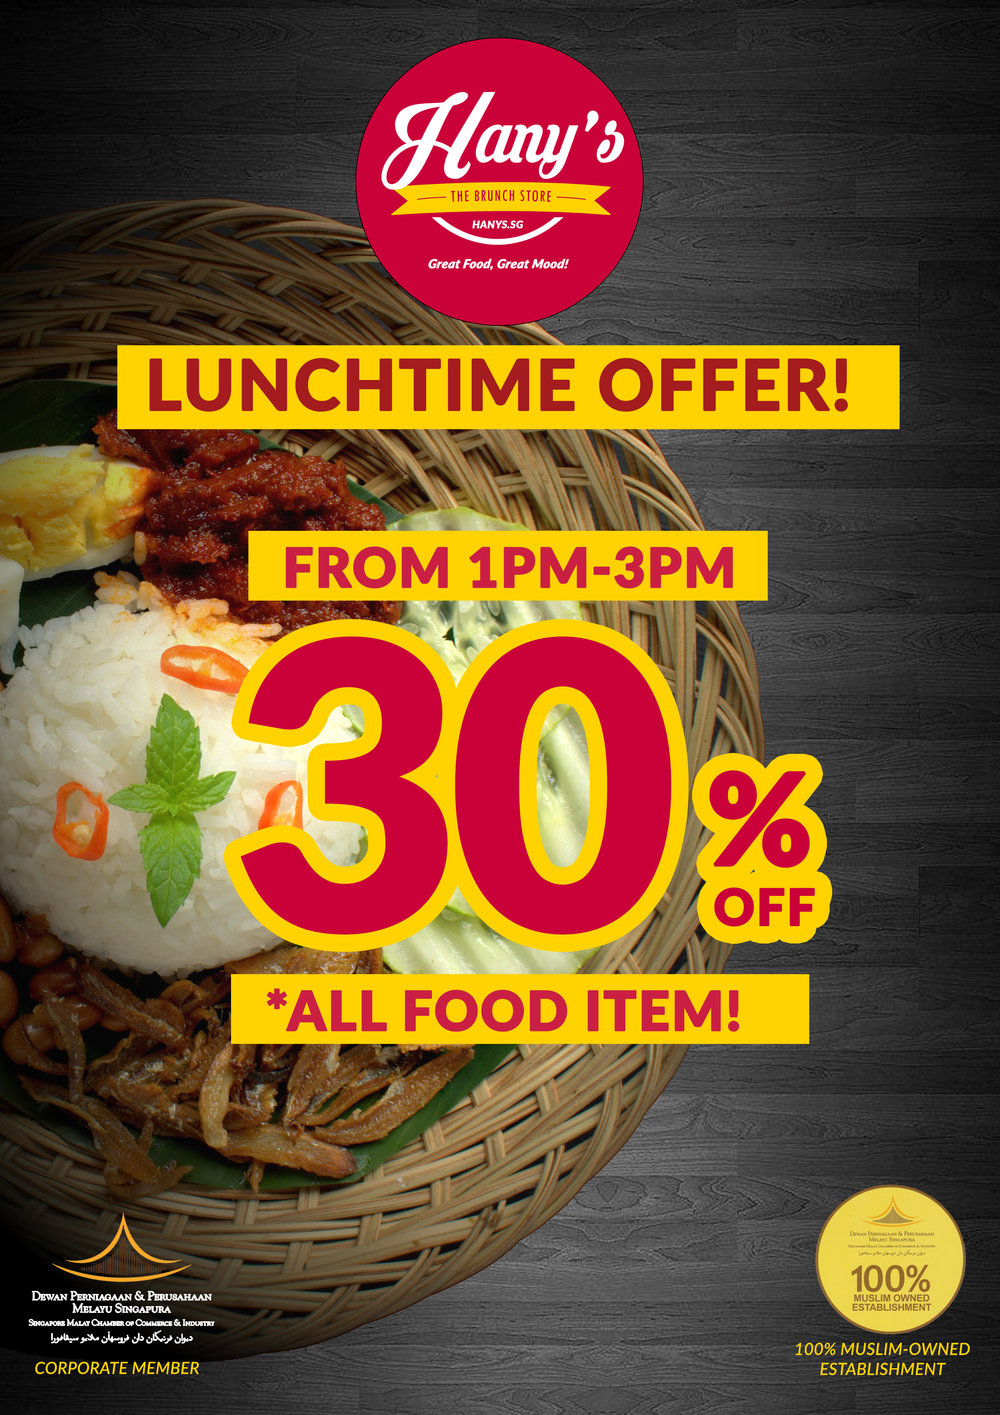 LUNCHTIME PROMO DEALS_A1.jpg